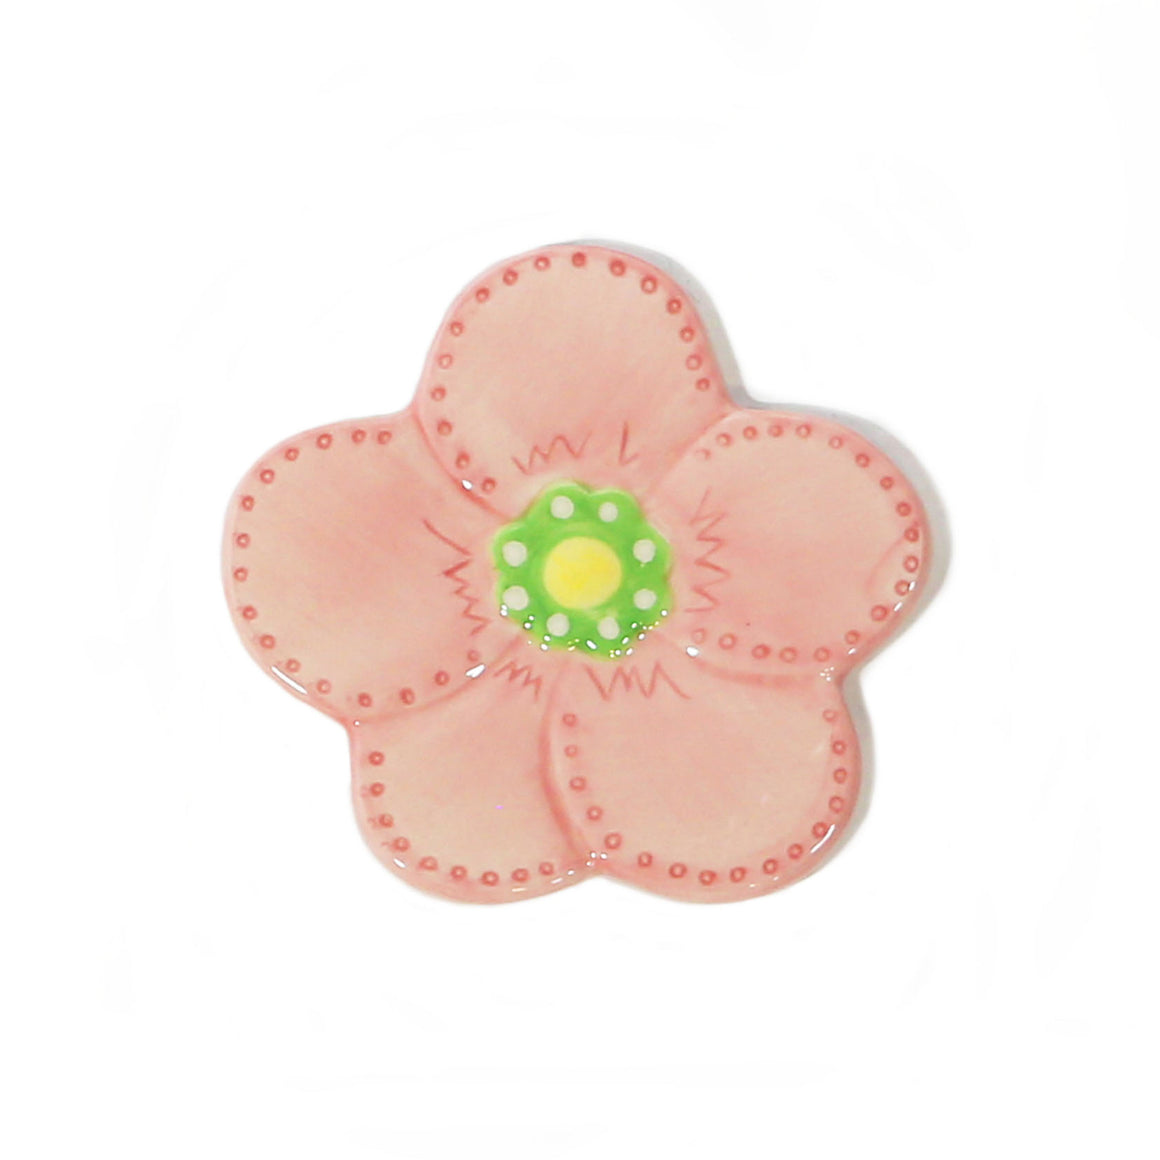 Pink Flower Hand-Painted Ceramic Magnetic Topper